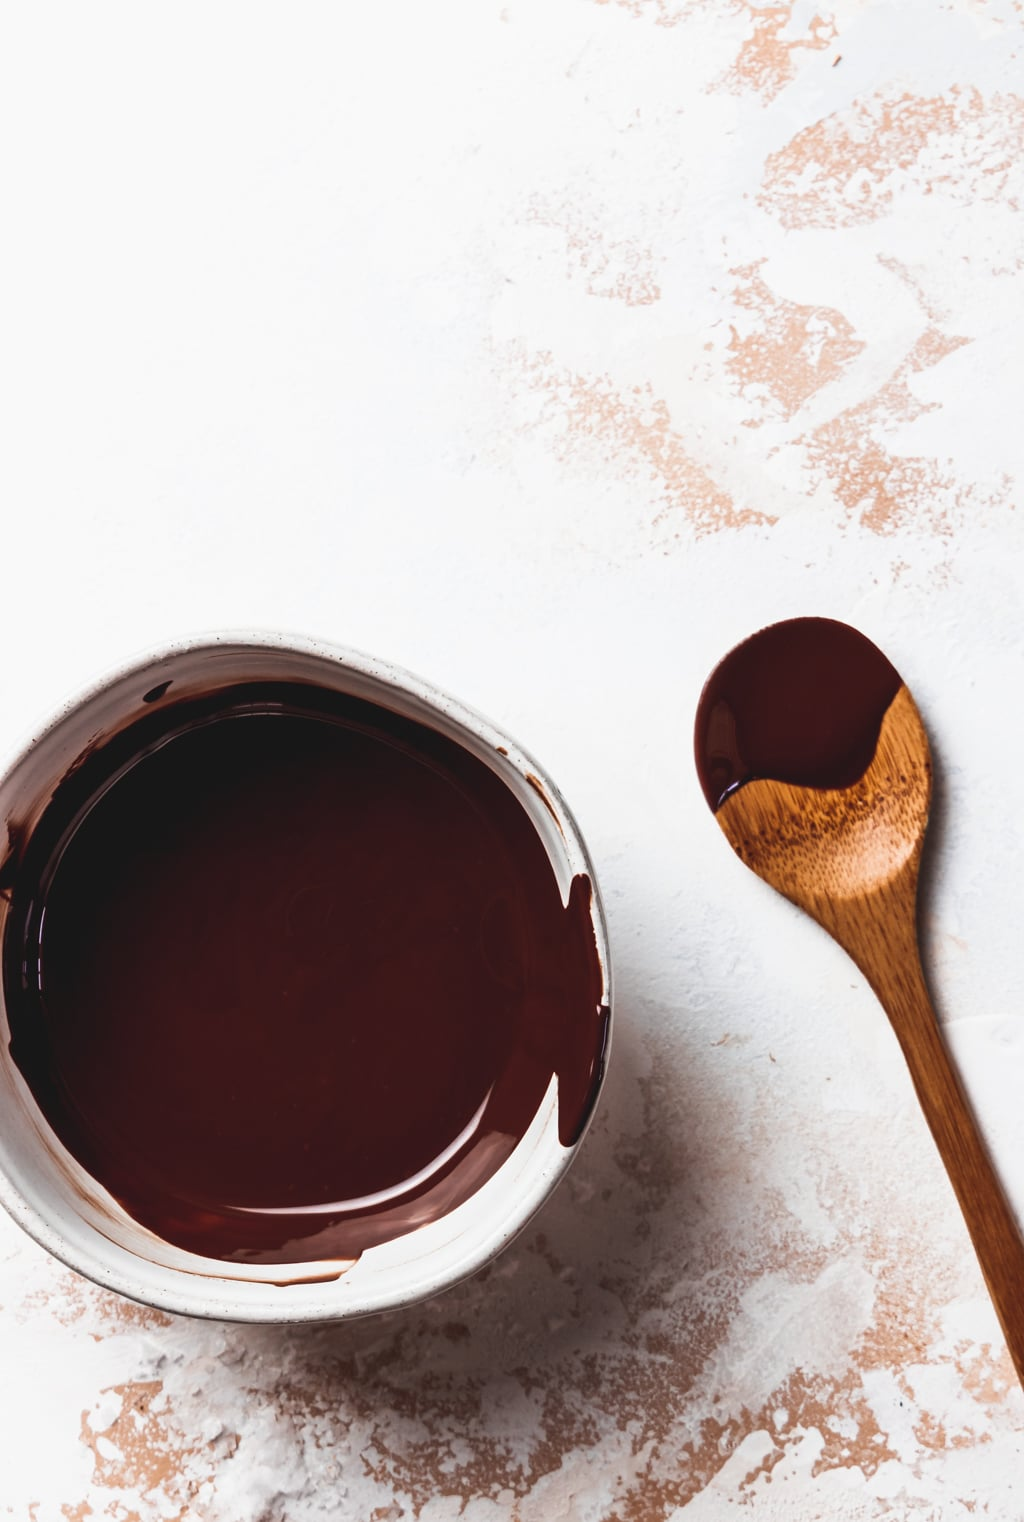 melted chocolate in a small white bowl with wooden spoon